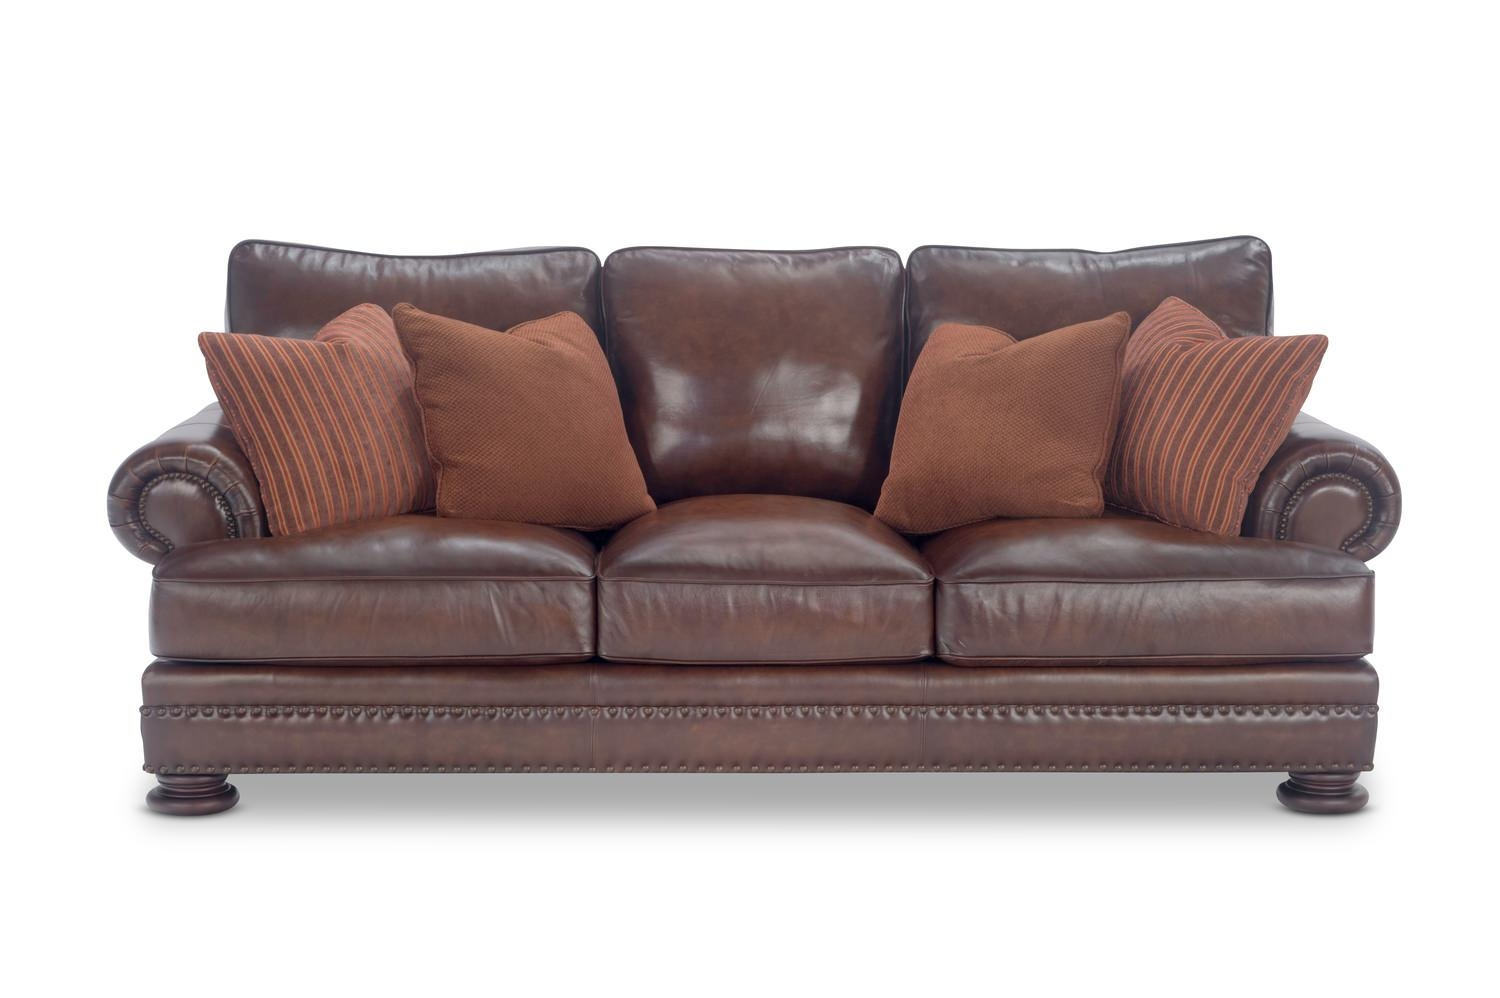 98″ Foster Elite Leather Sofabernhardt | Hom Furniture With Regard To Foster Leather Sofas (Image 1 of 20)